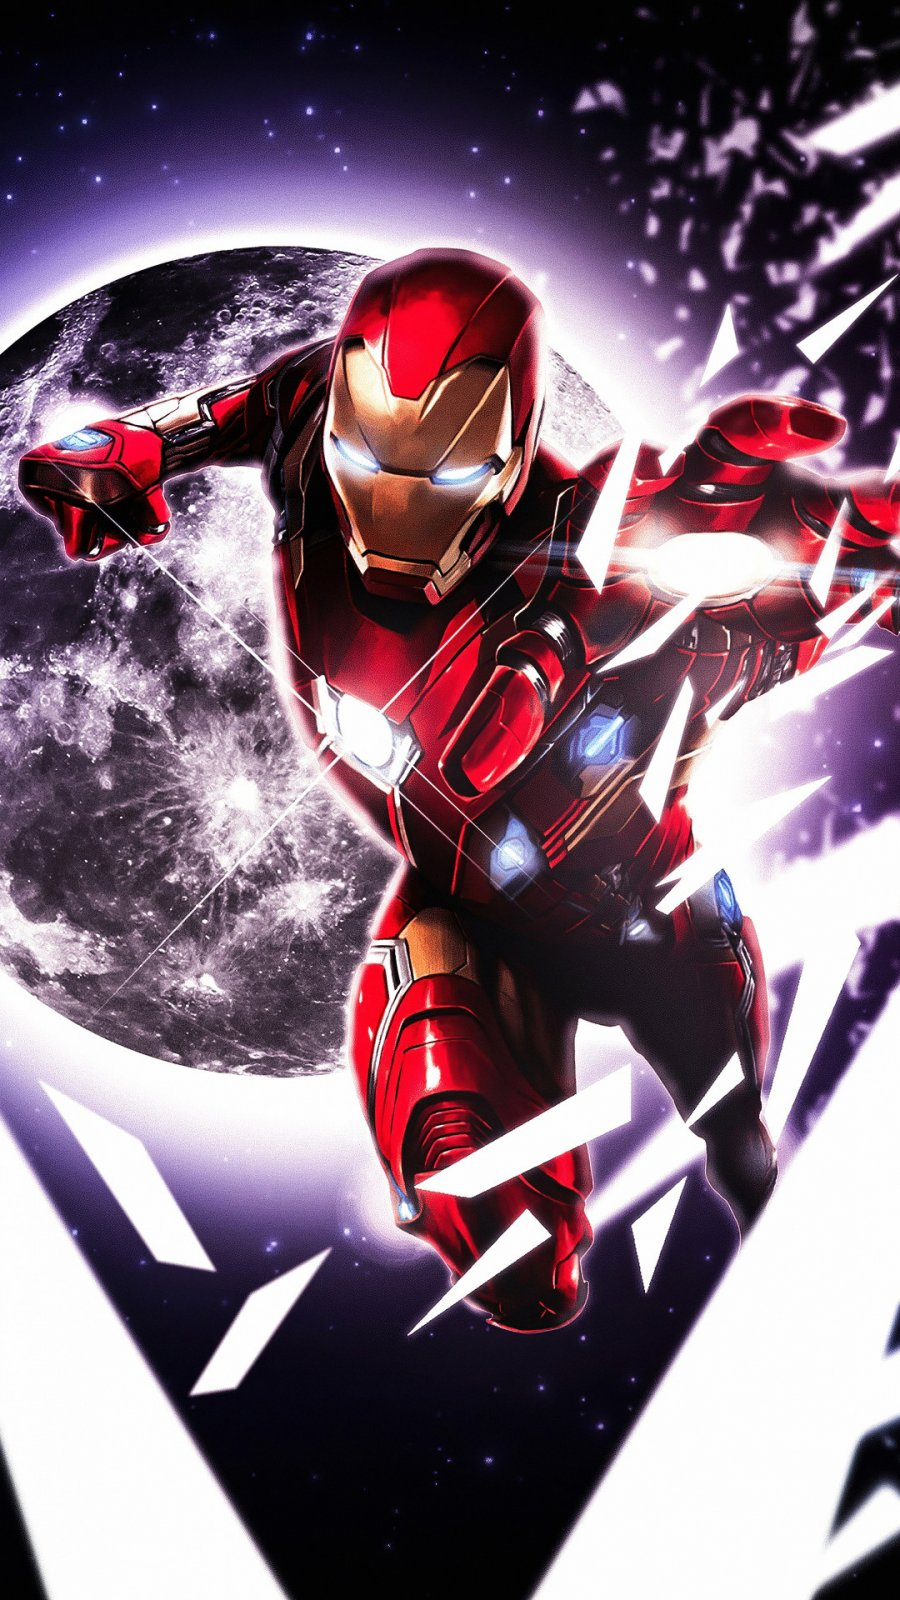 Iron Man Artistic iPhone Wallpaper